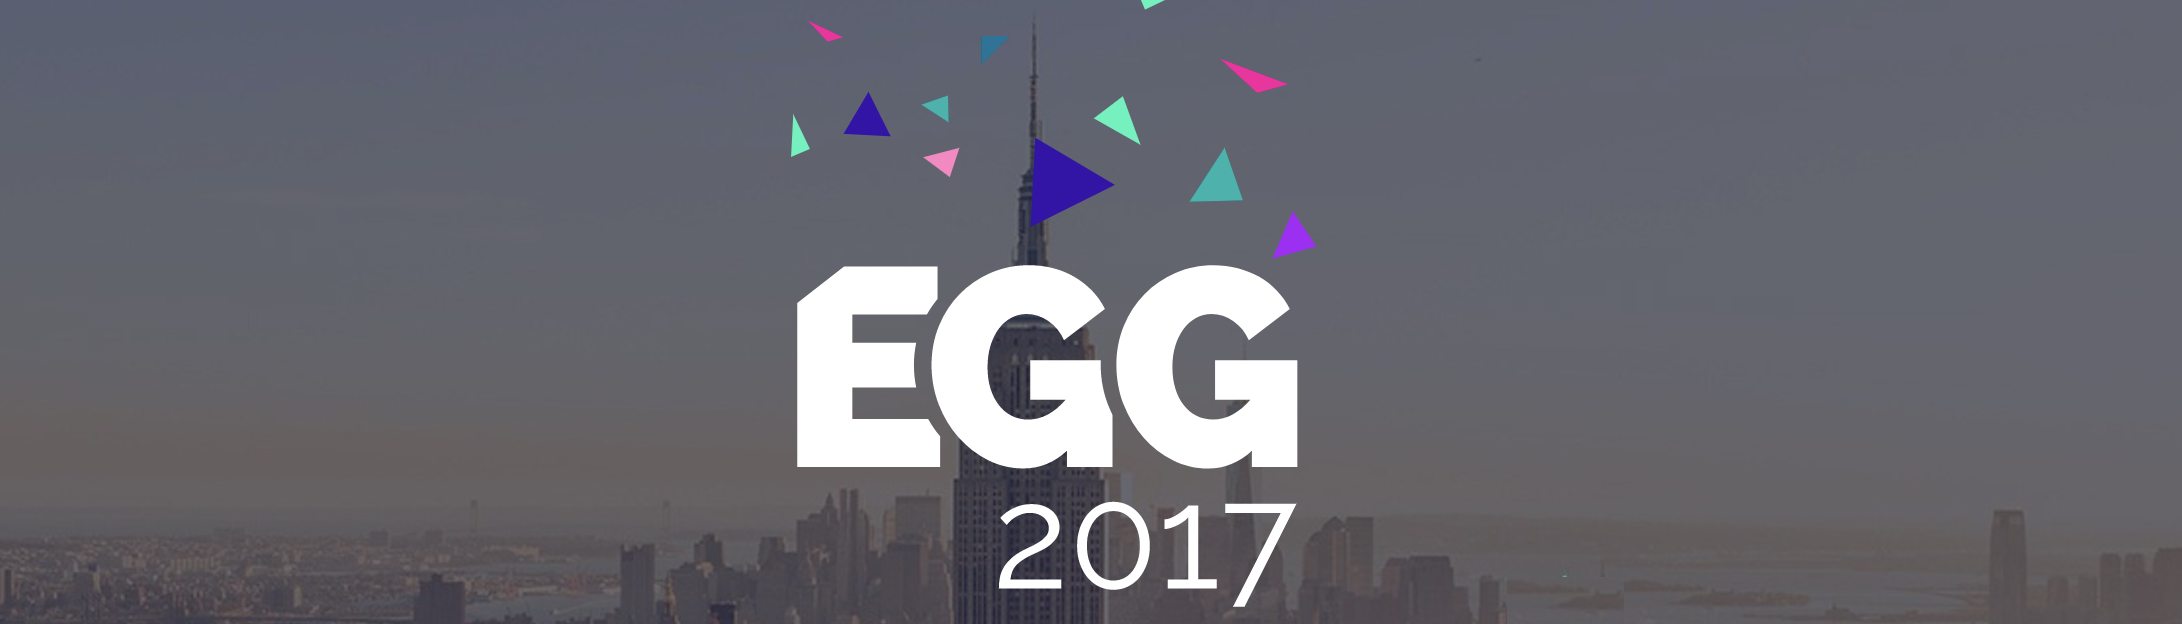 egg2017.png